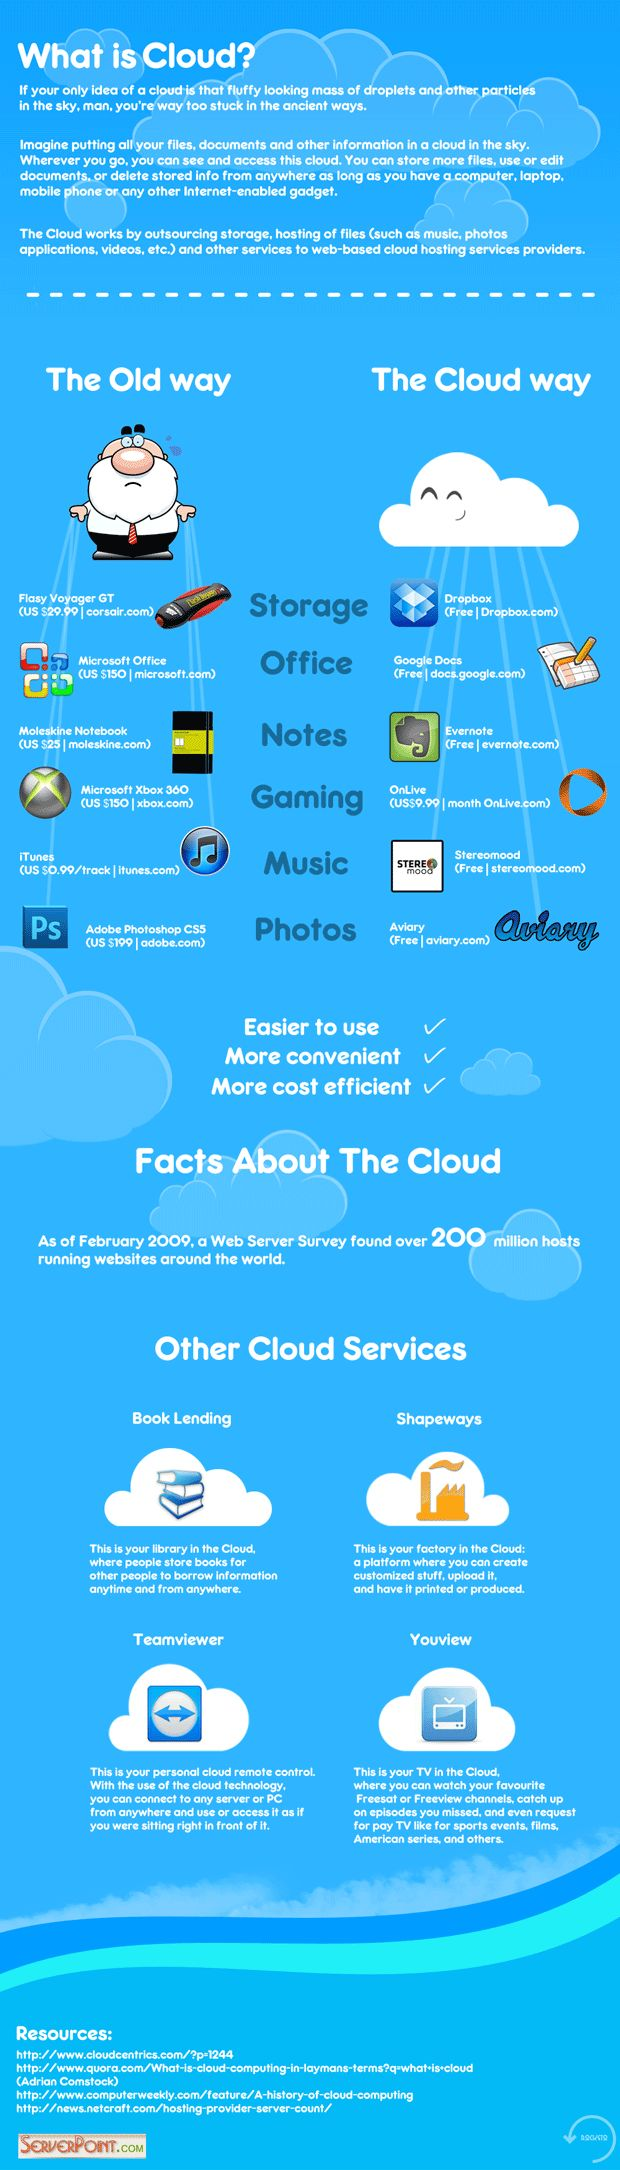 What is cloud?